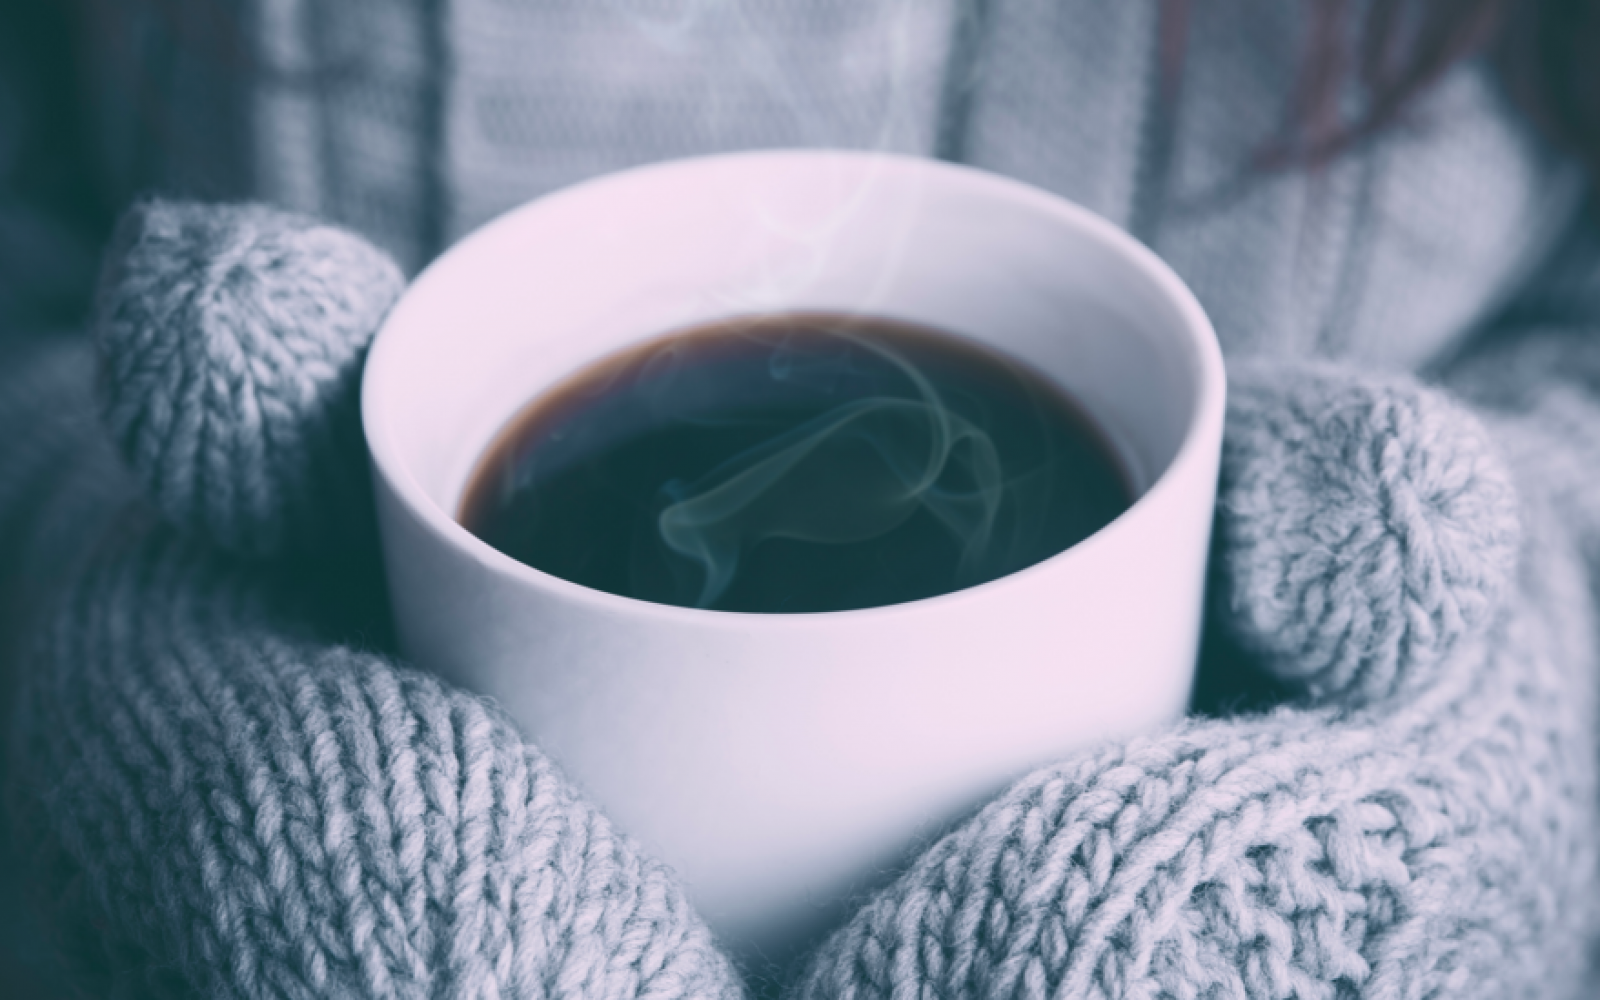 15 Quotes Anyone Addicted to Coffee Would Appreciate